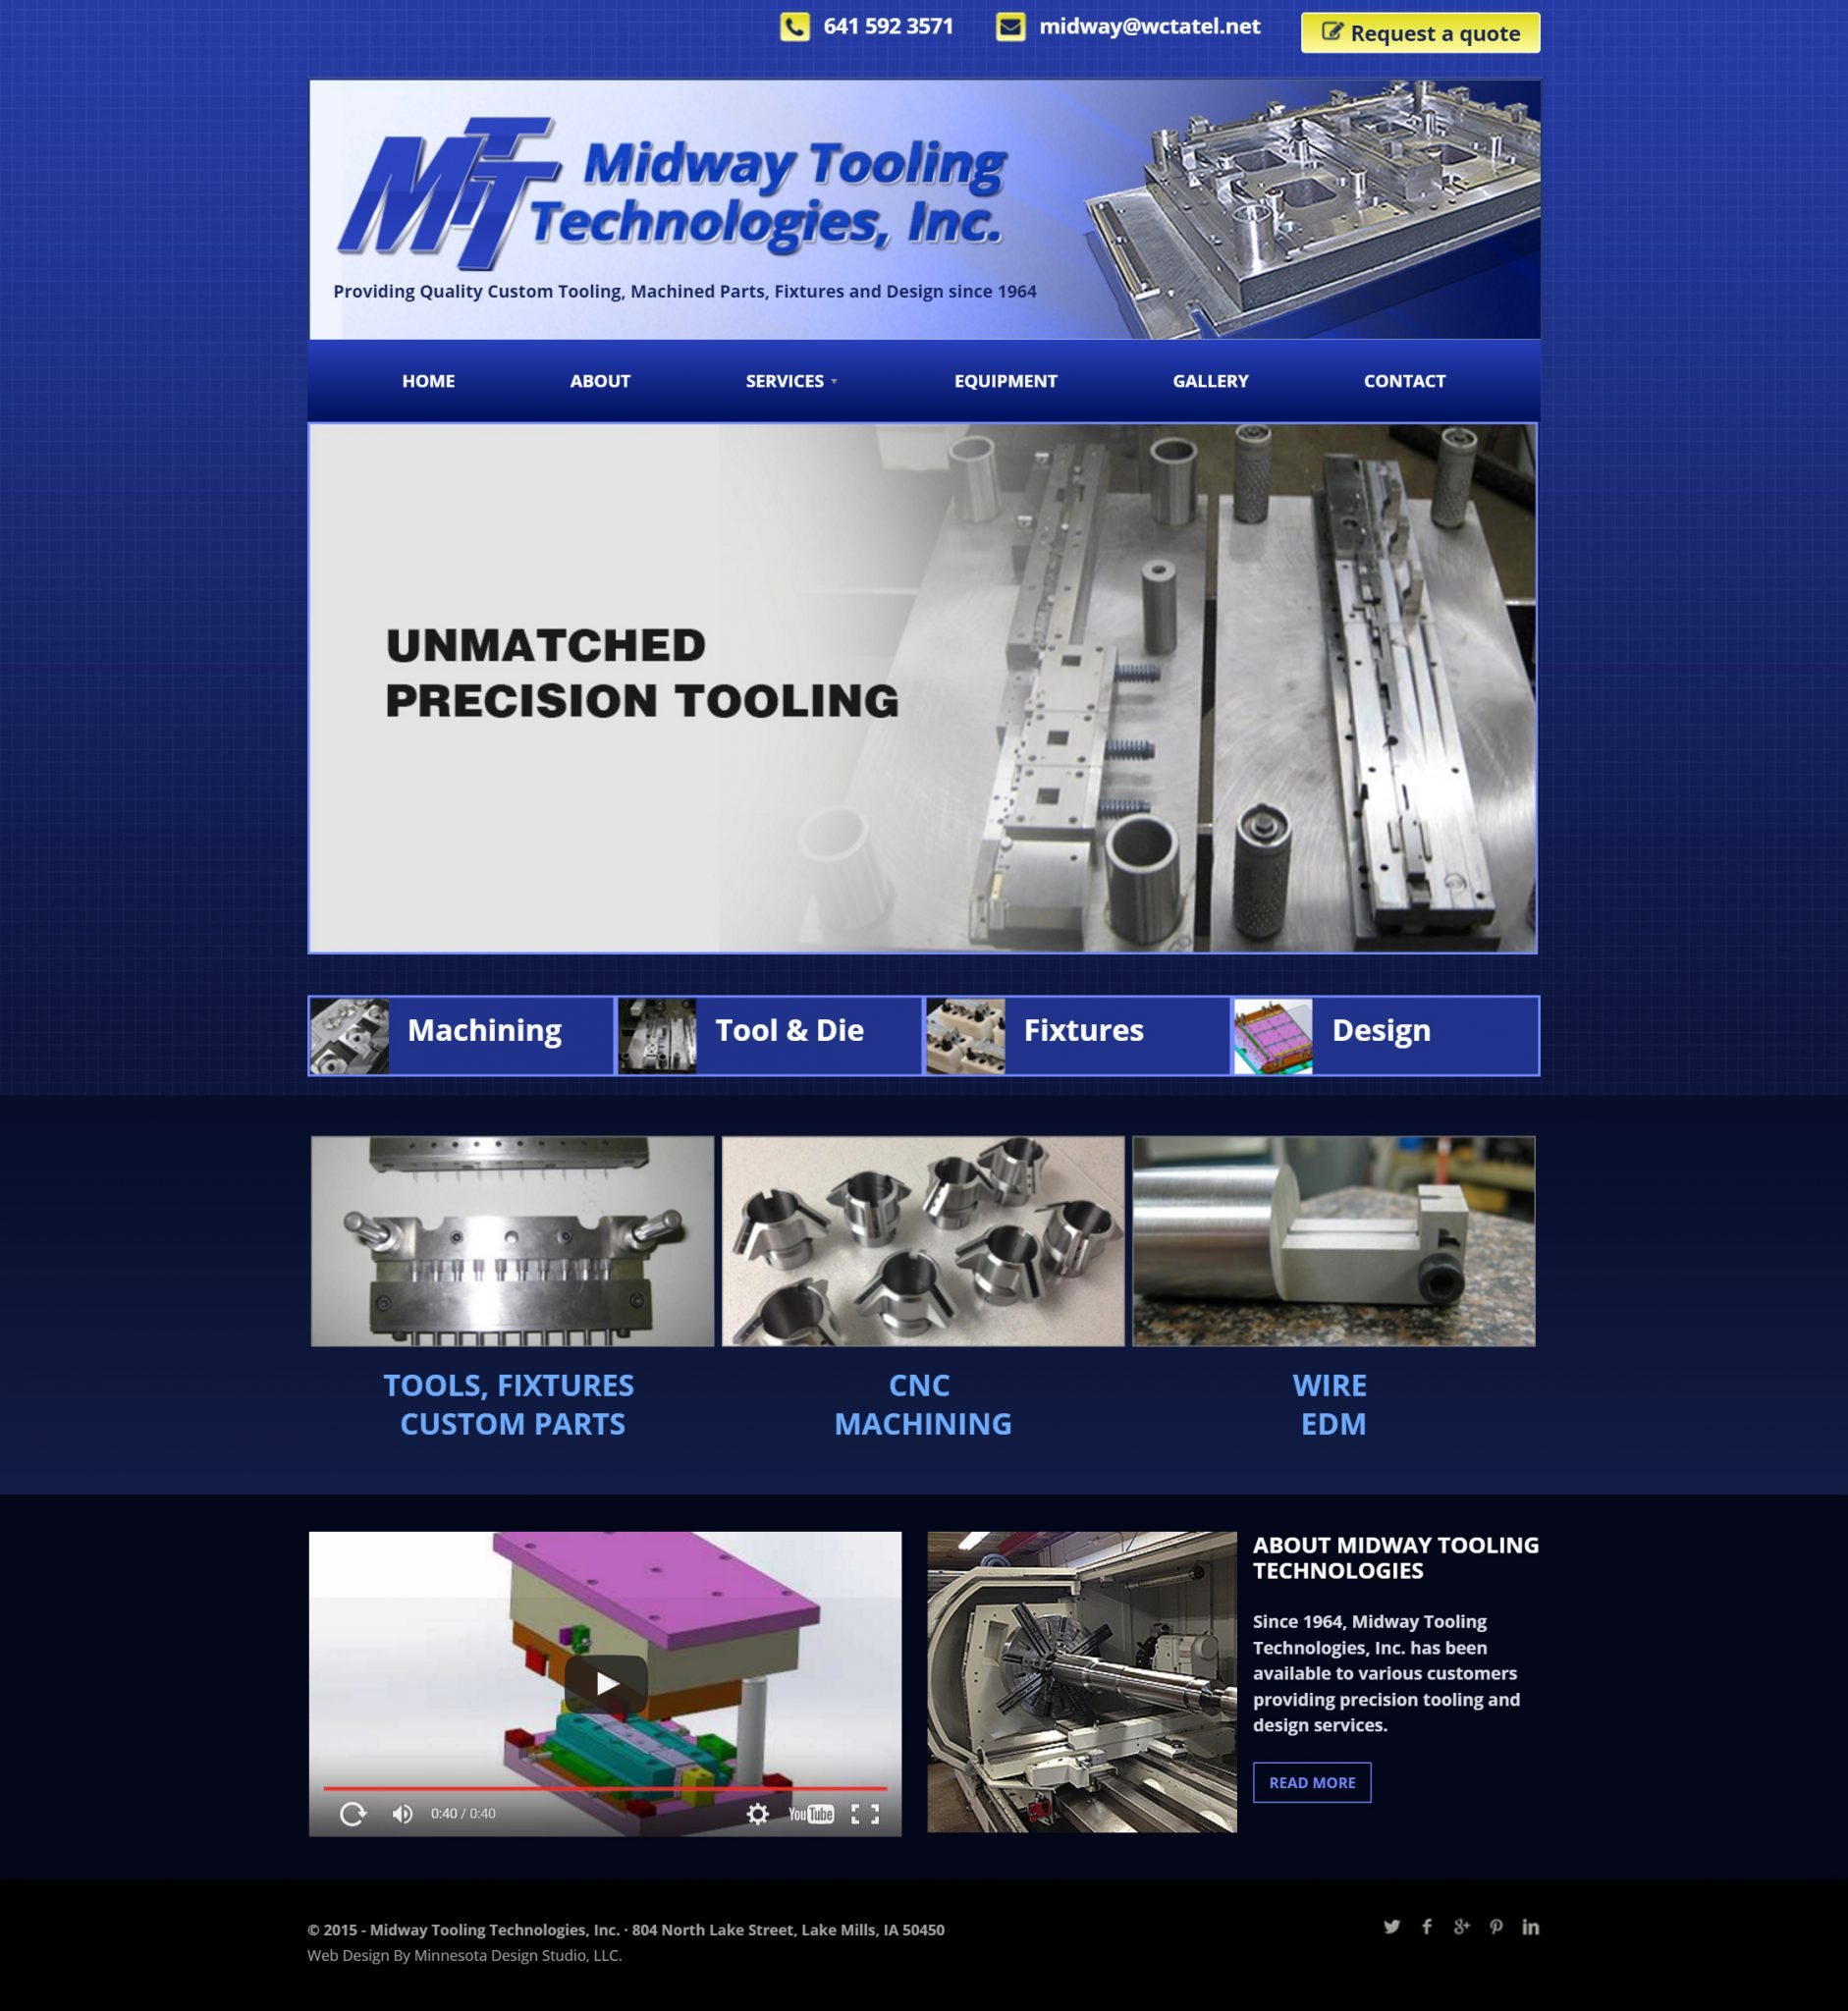 Midway Tooling Technologies